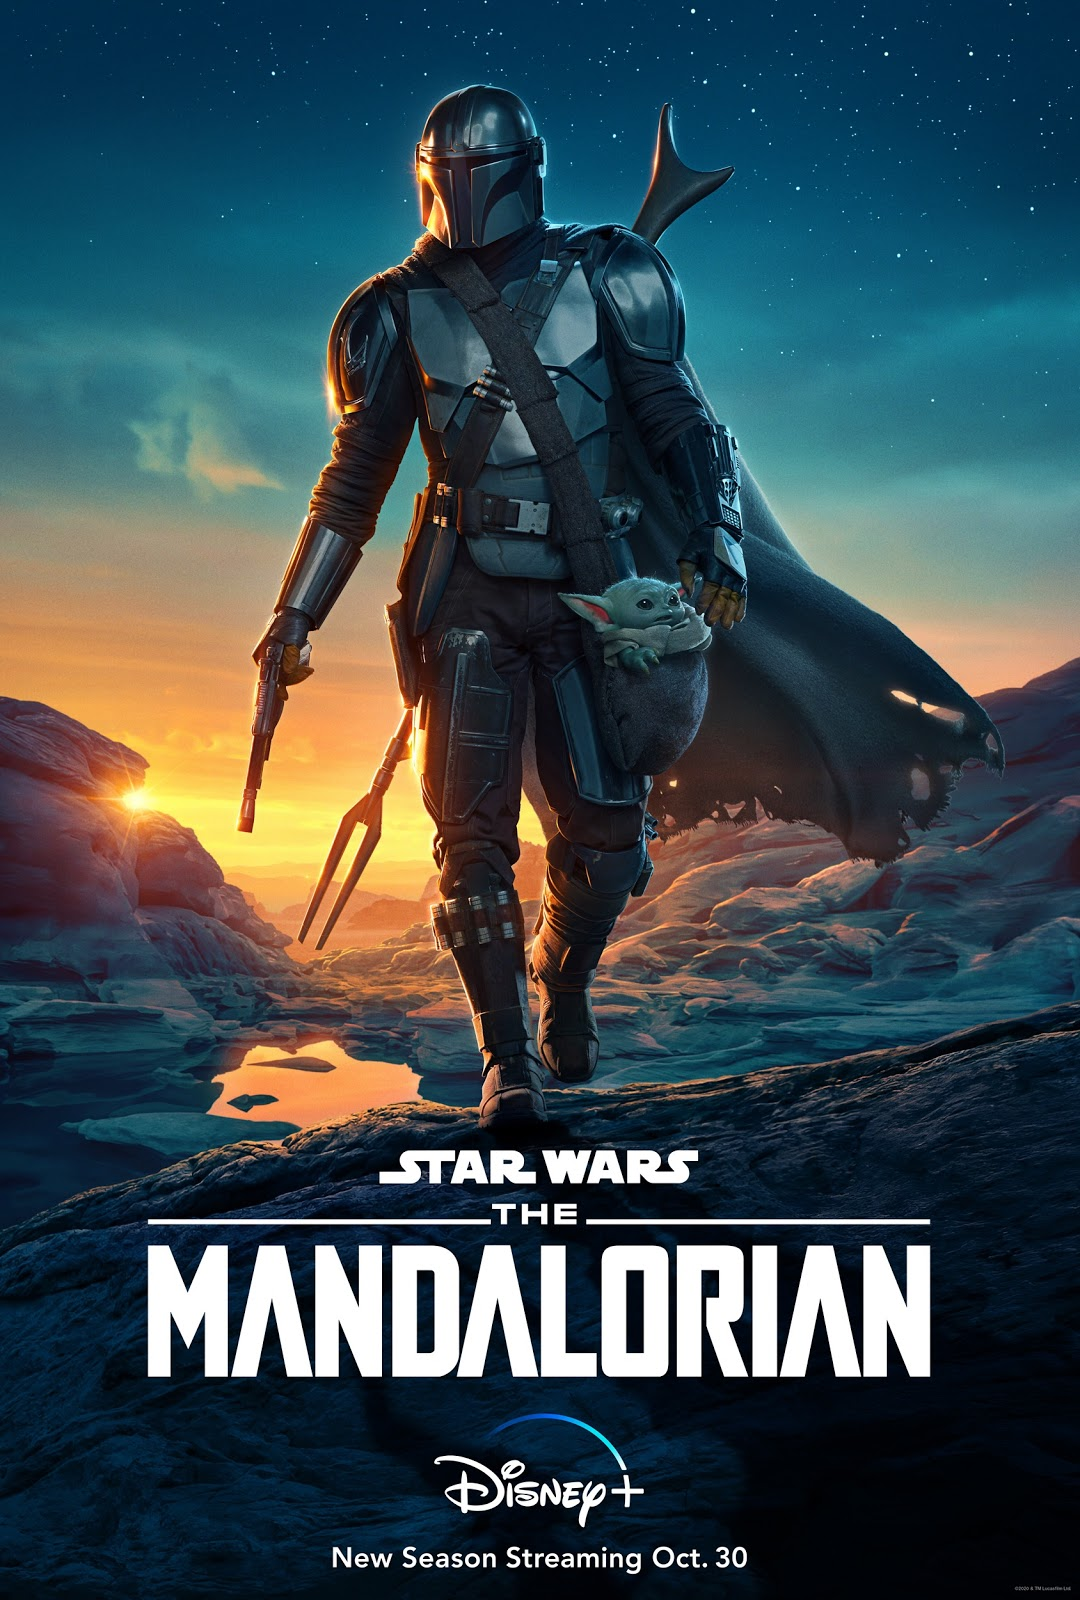 Star Wars The Mandalorian season 2 poster